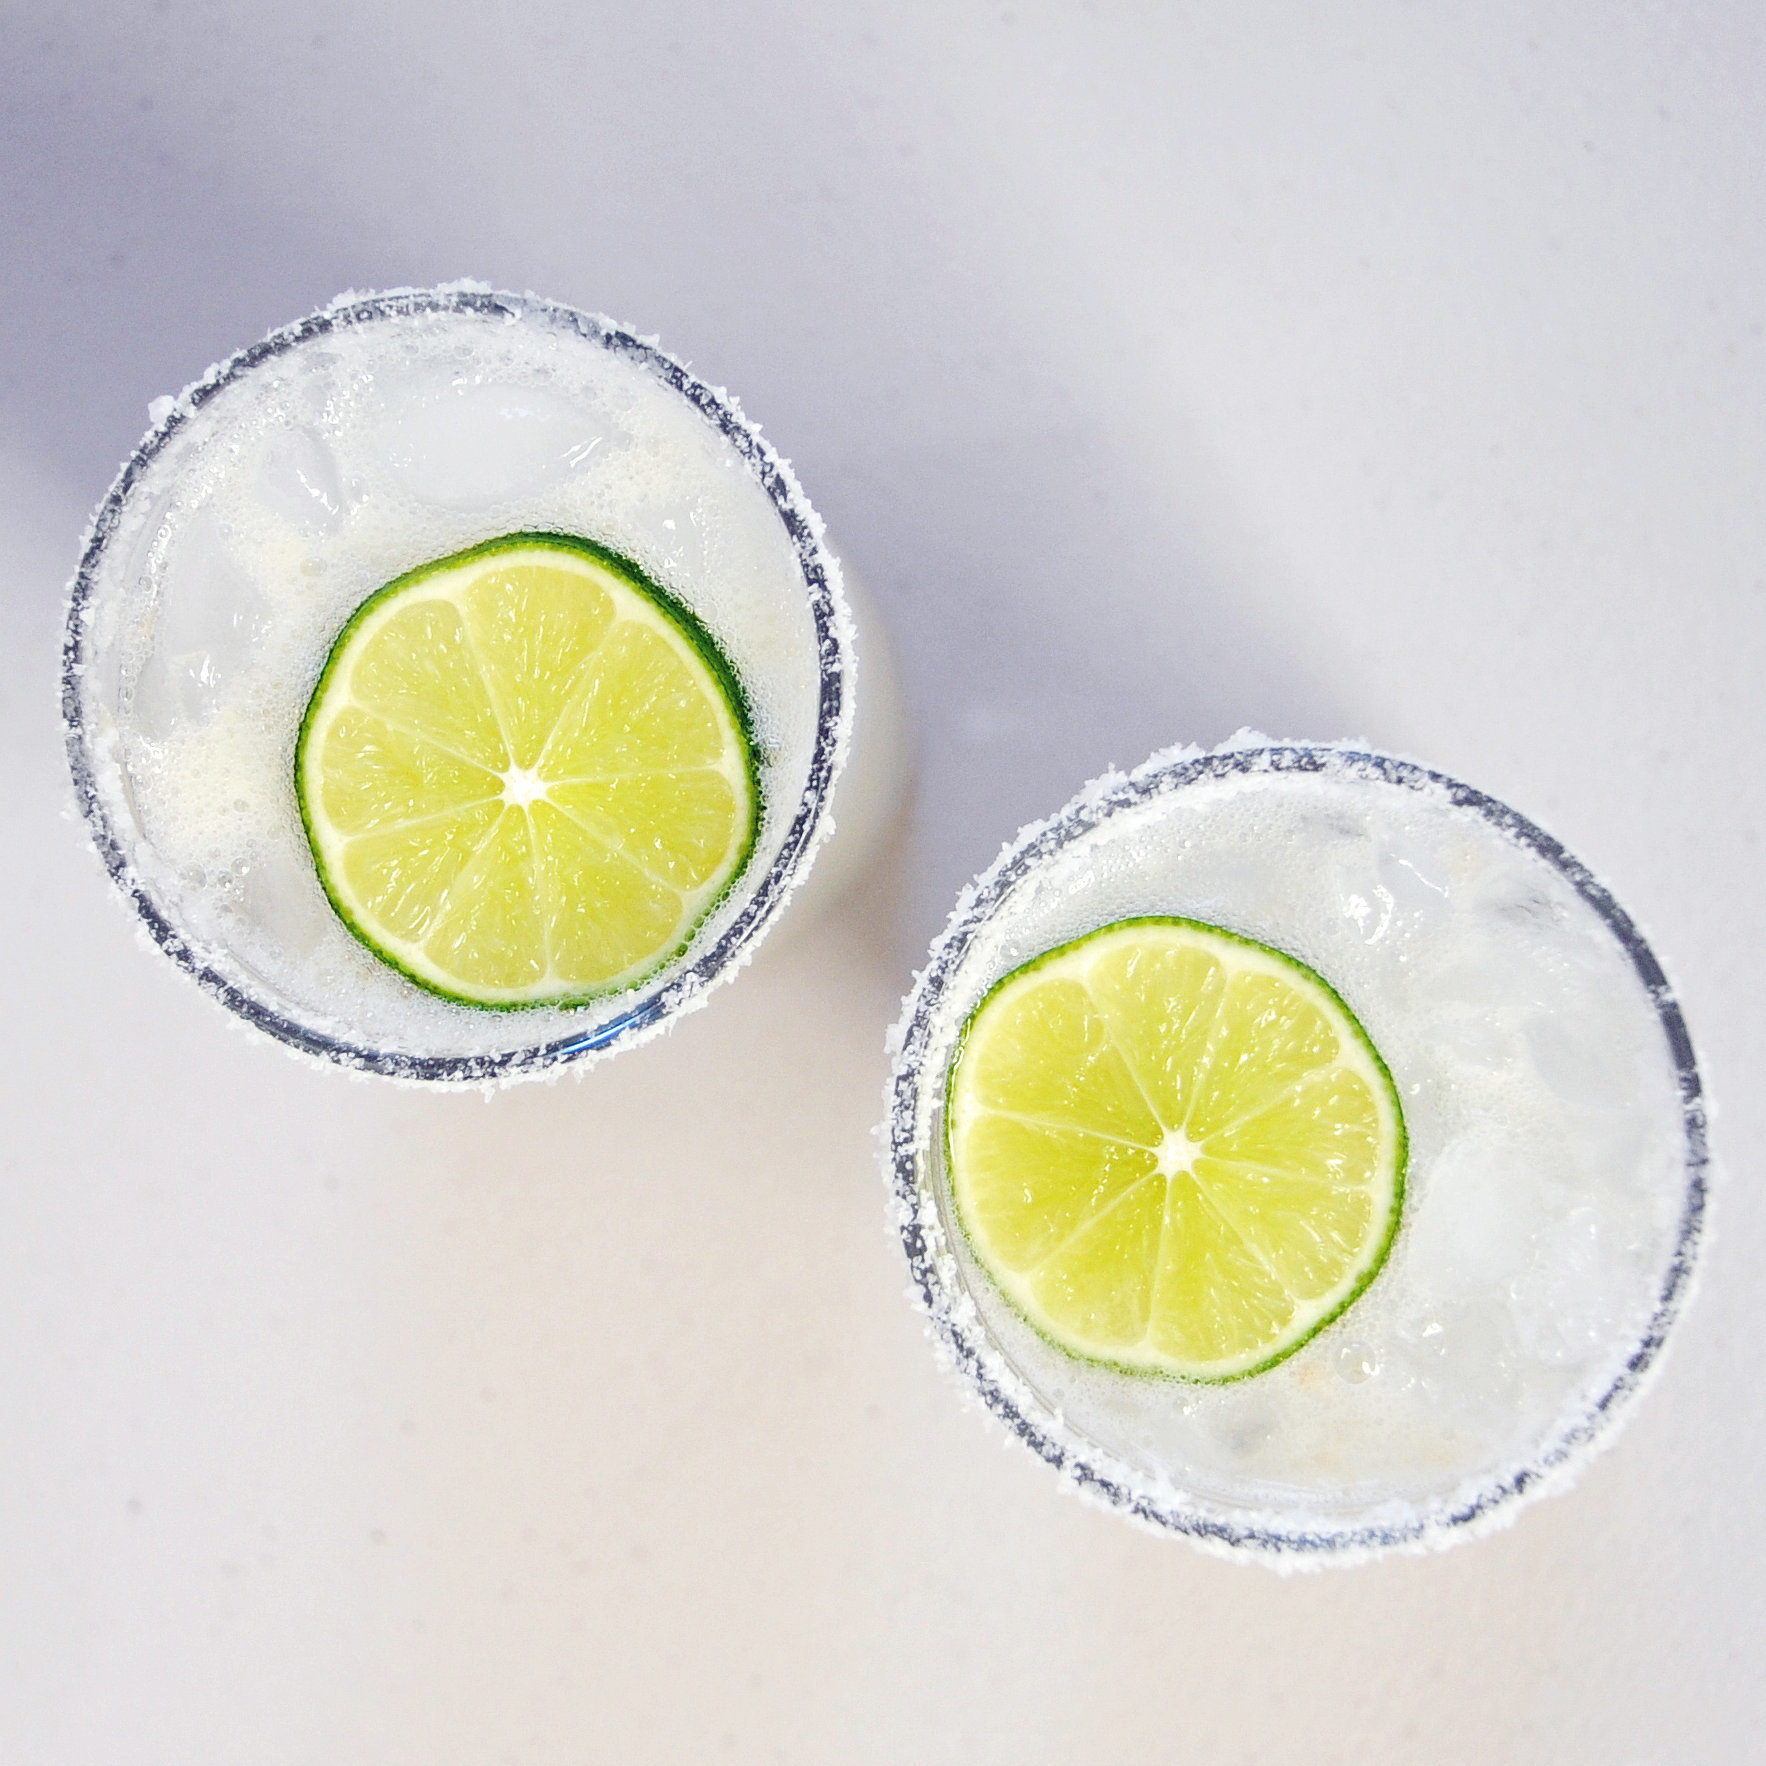 Monday is National Margarita Day